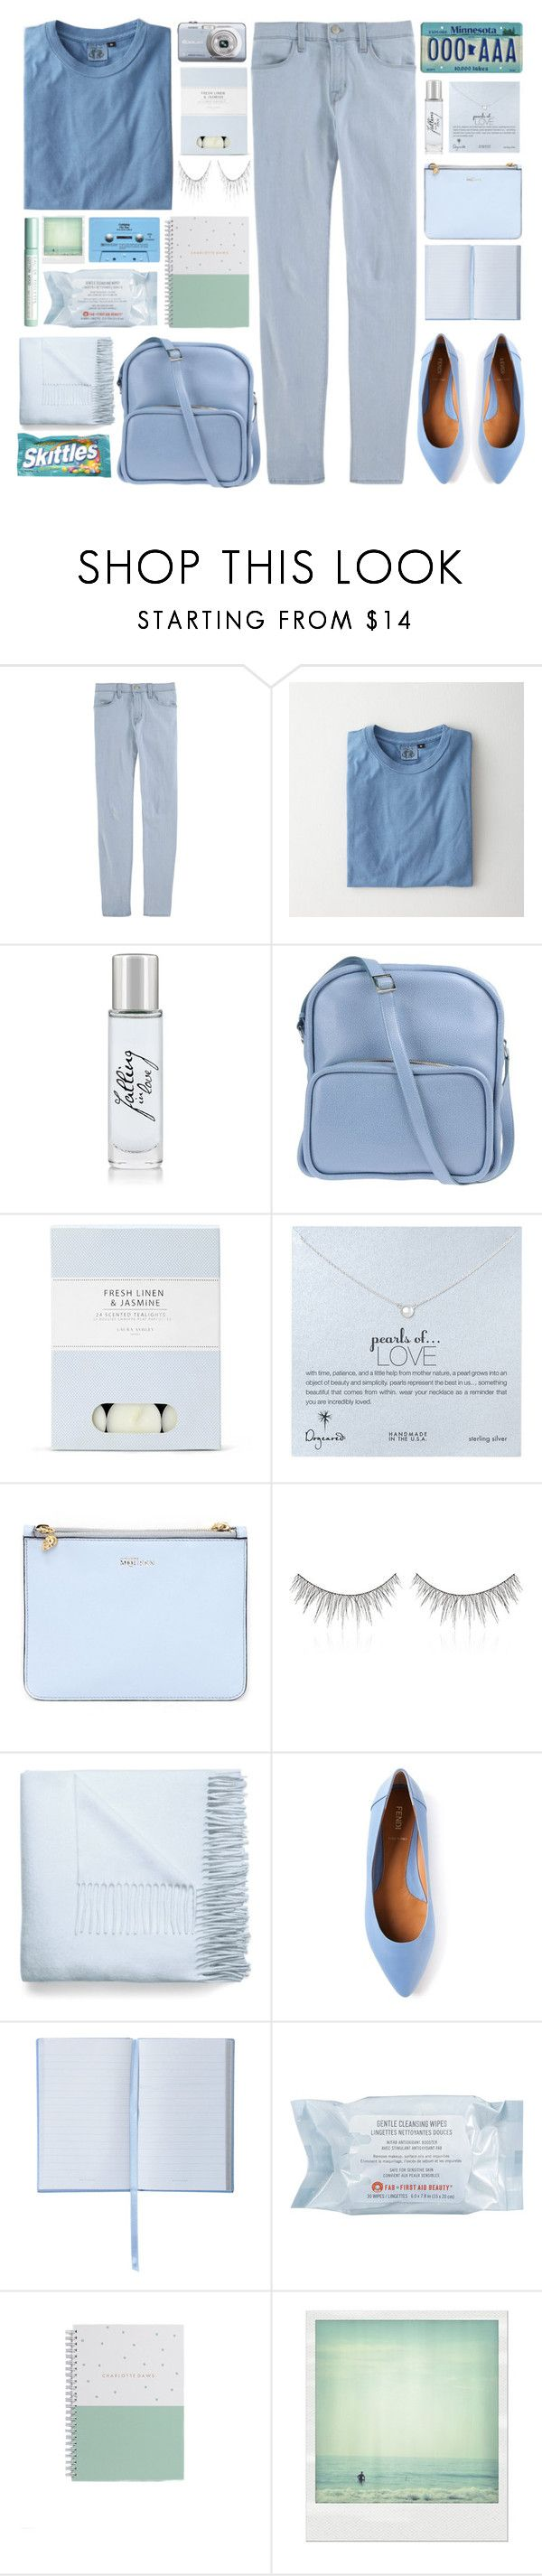 """Untitled #21"" by junotsalis ❤ liked on Polyvore featuring J Brand, CASSETTE, Jungmaven, philosophy, Jil Sander Navy, Casio, Laura Ashley, Dogeared, Alexander McQueen and shu uemura"